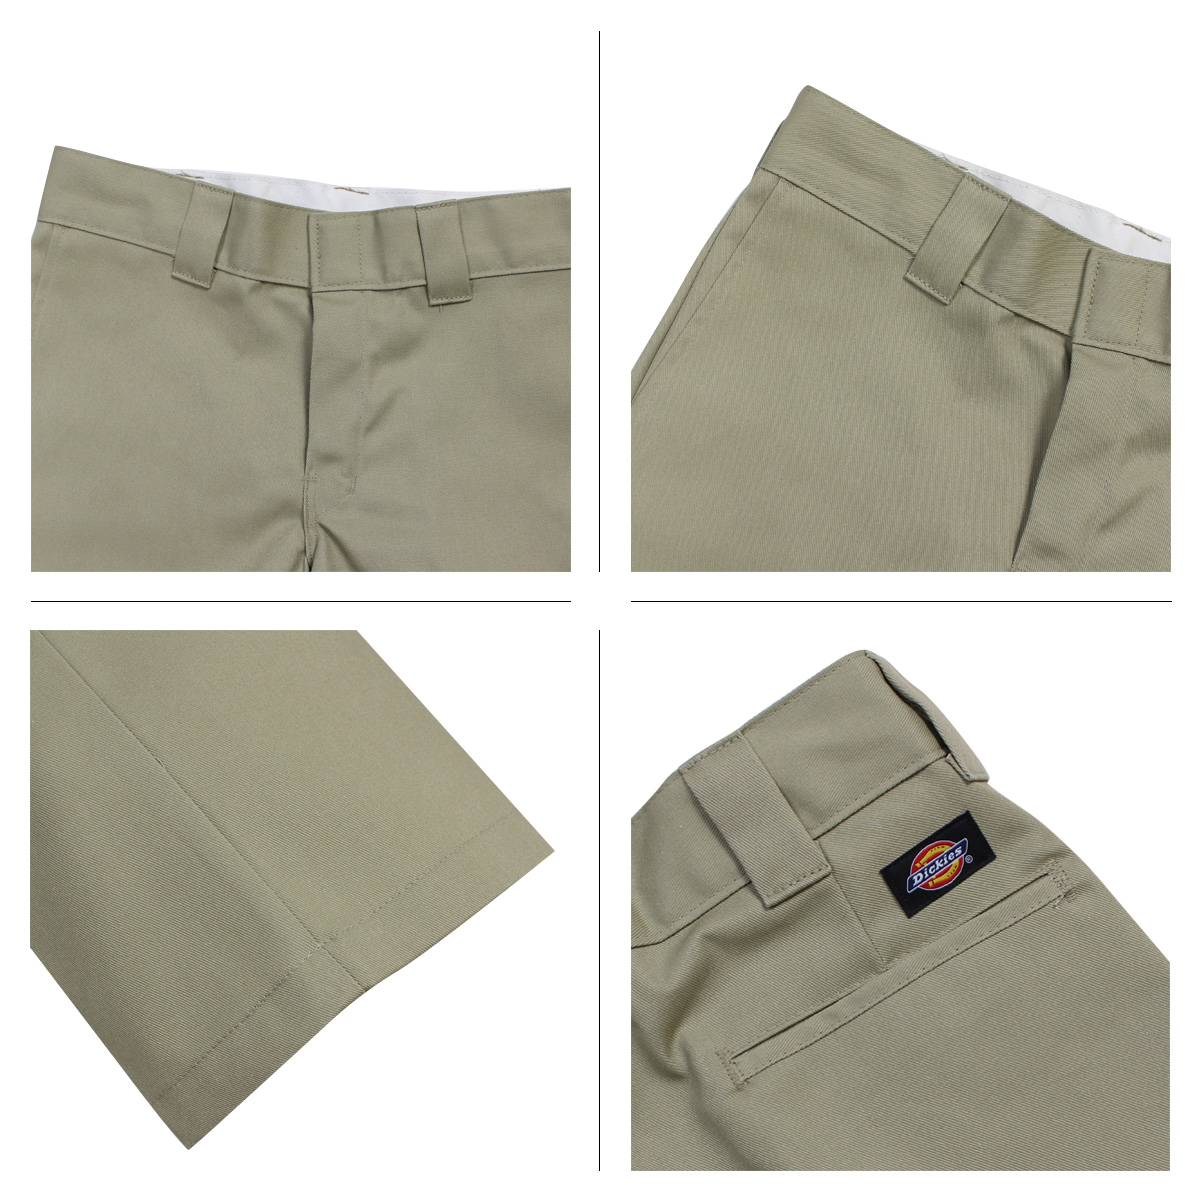 Allsports Dickies 873 Work Pants Wp873 Chino Men Tendencies Navy Chinos Short 32 The Well Established Brand Which Is High Quality And Continues Making A Wear Coherent To Everyday Life Including Cover